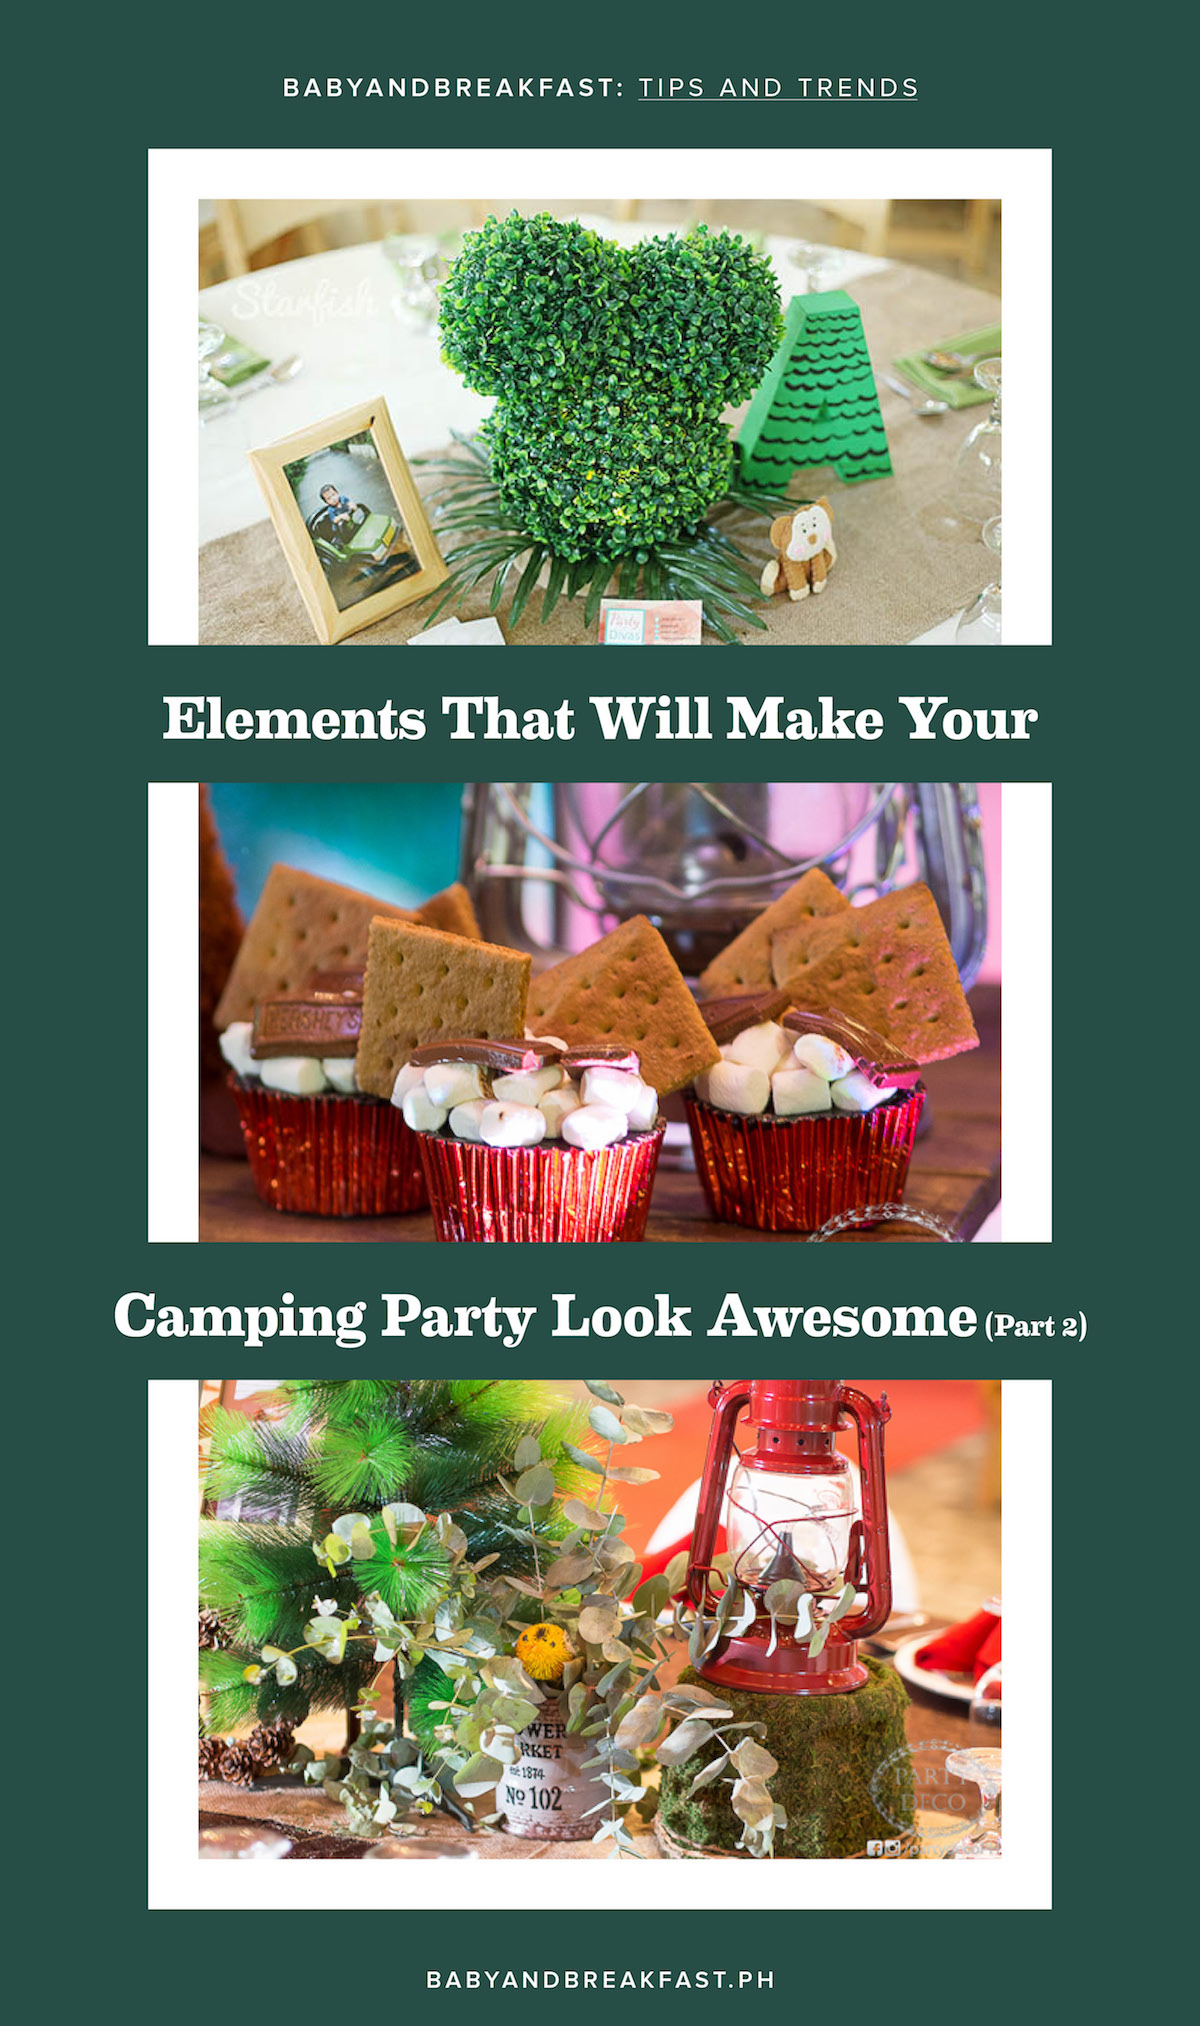 Elements of a Camping Party